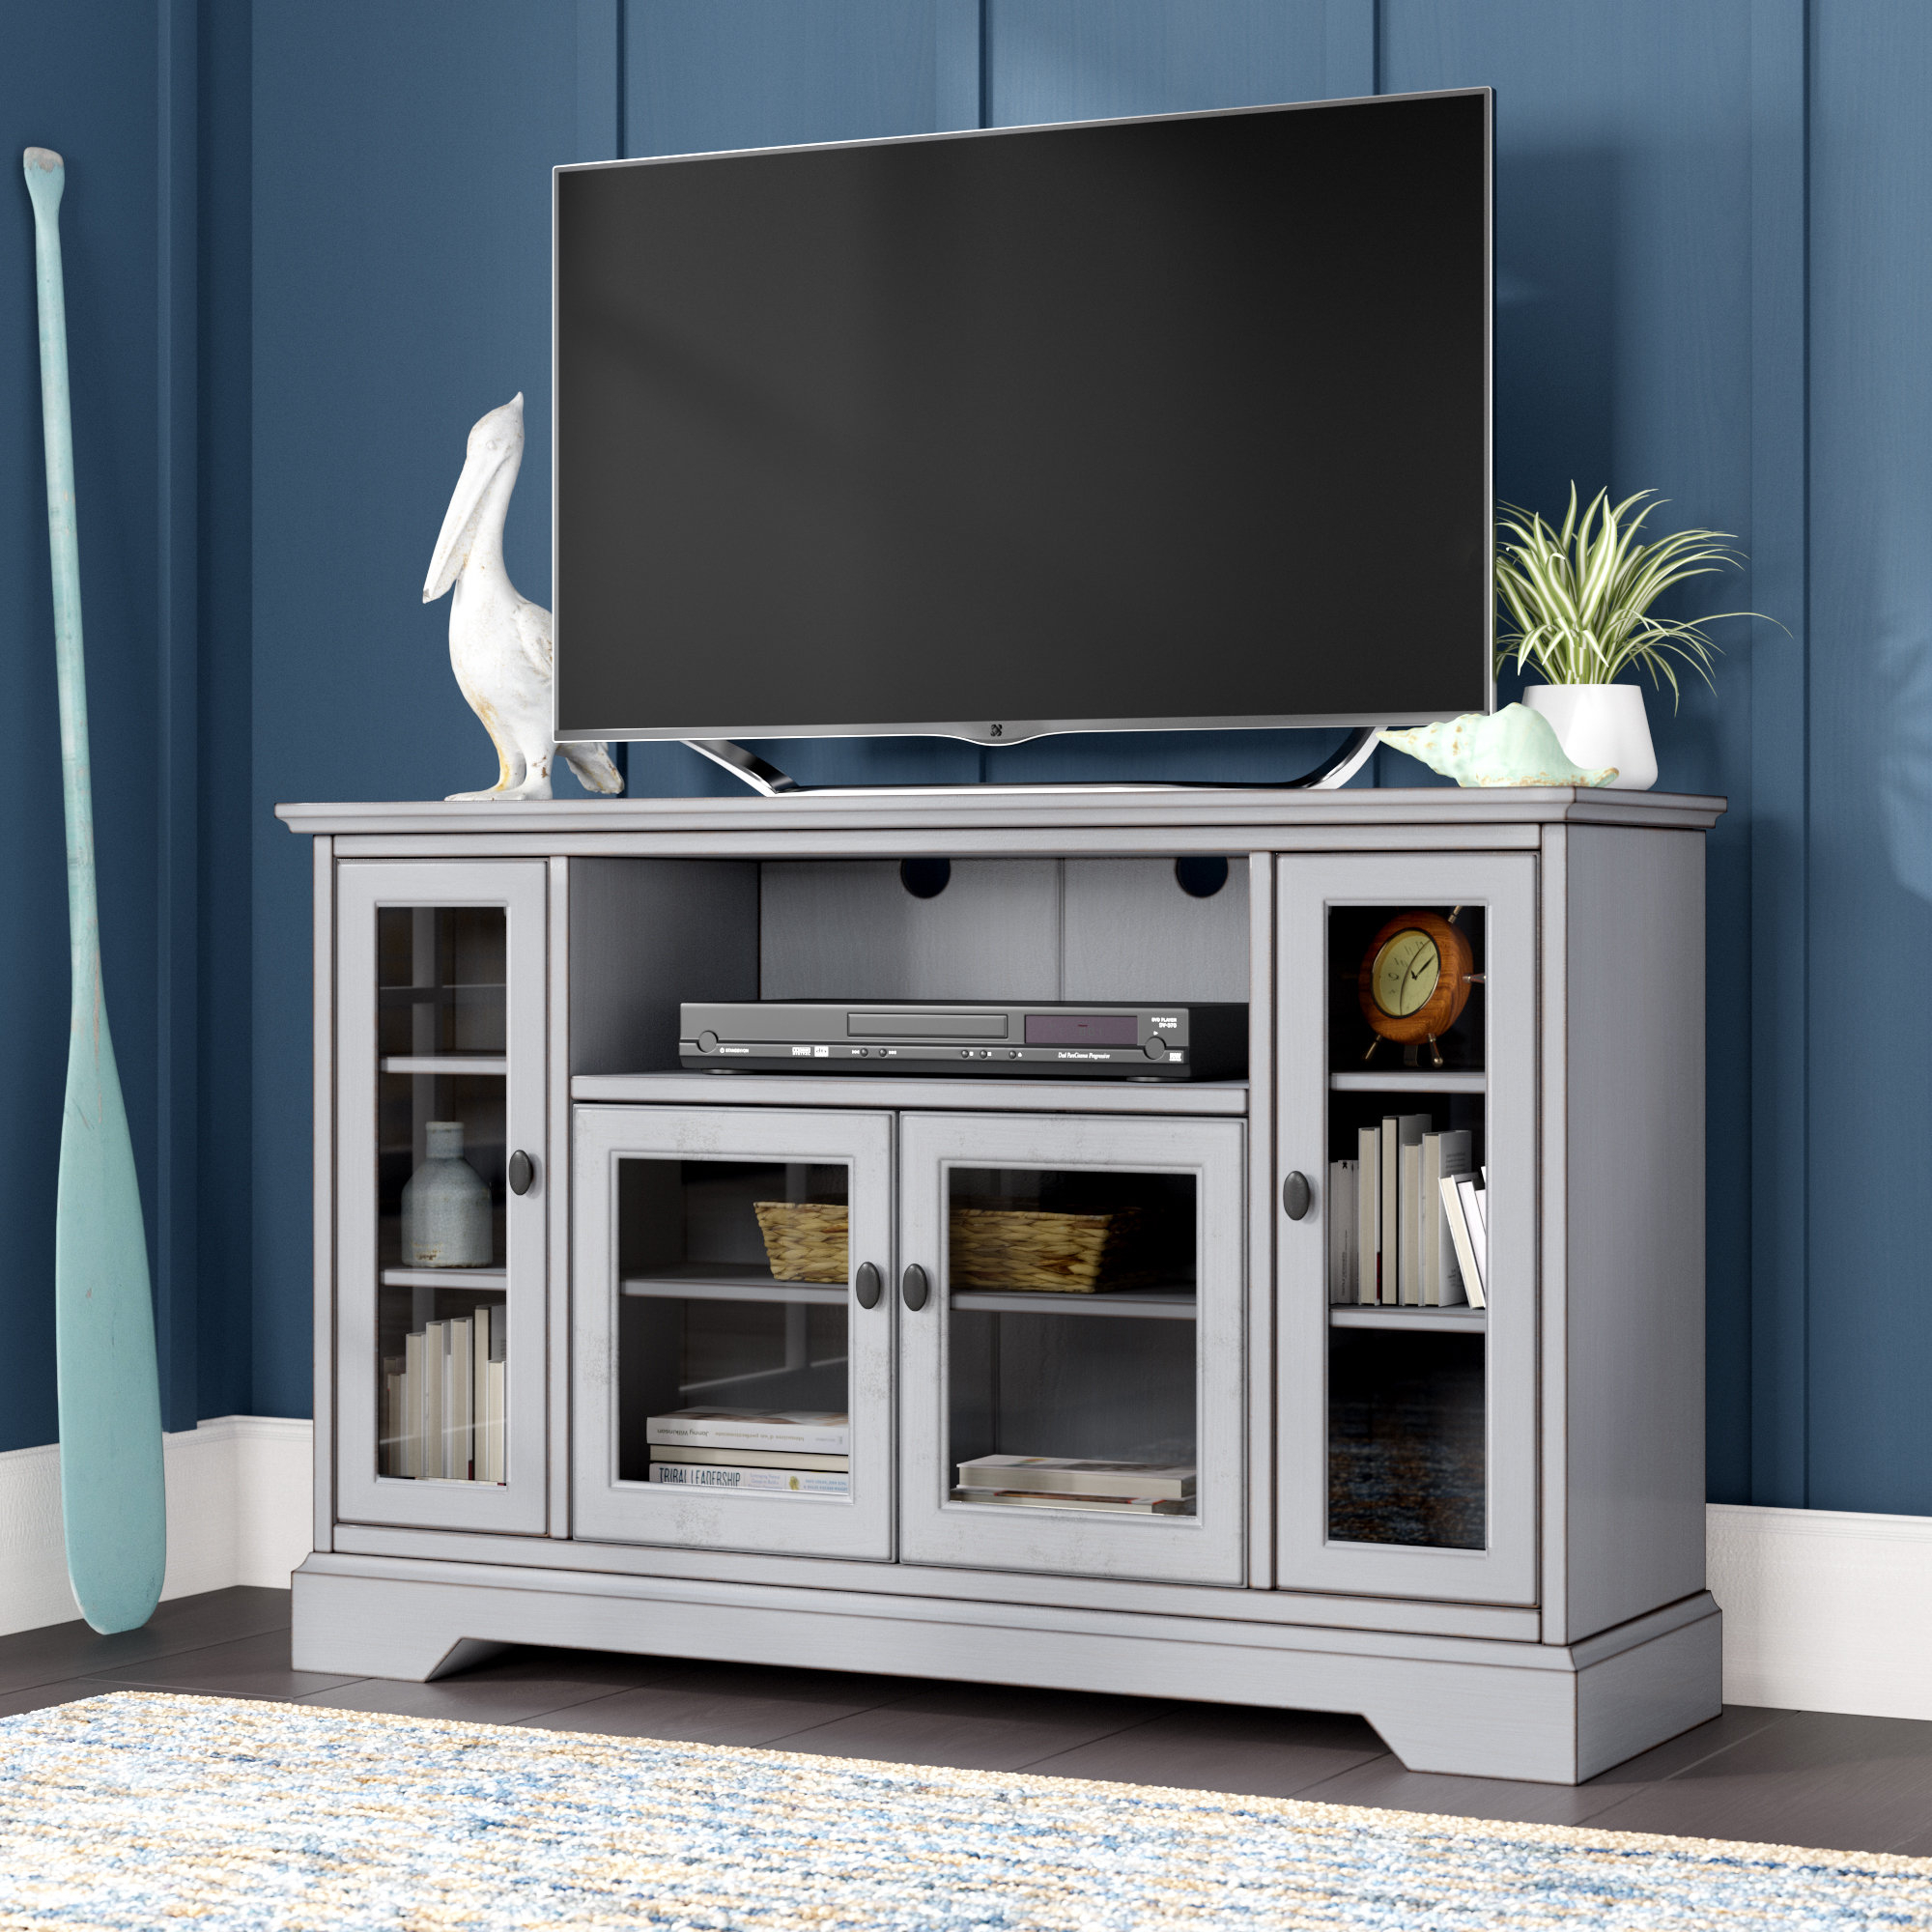 Tv Stands | Joss & Main with regard to Annabelle Blue 70 Inch Tv Stands (Image 26 of 30)